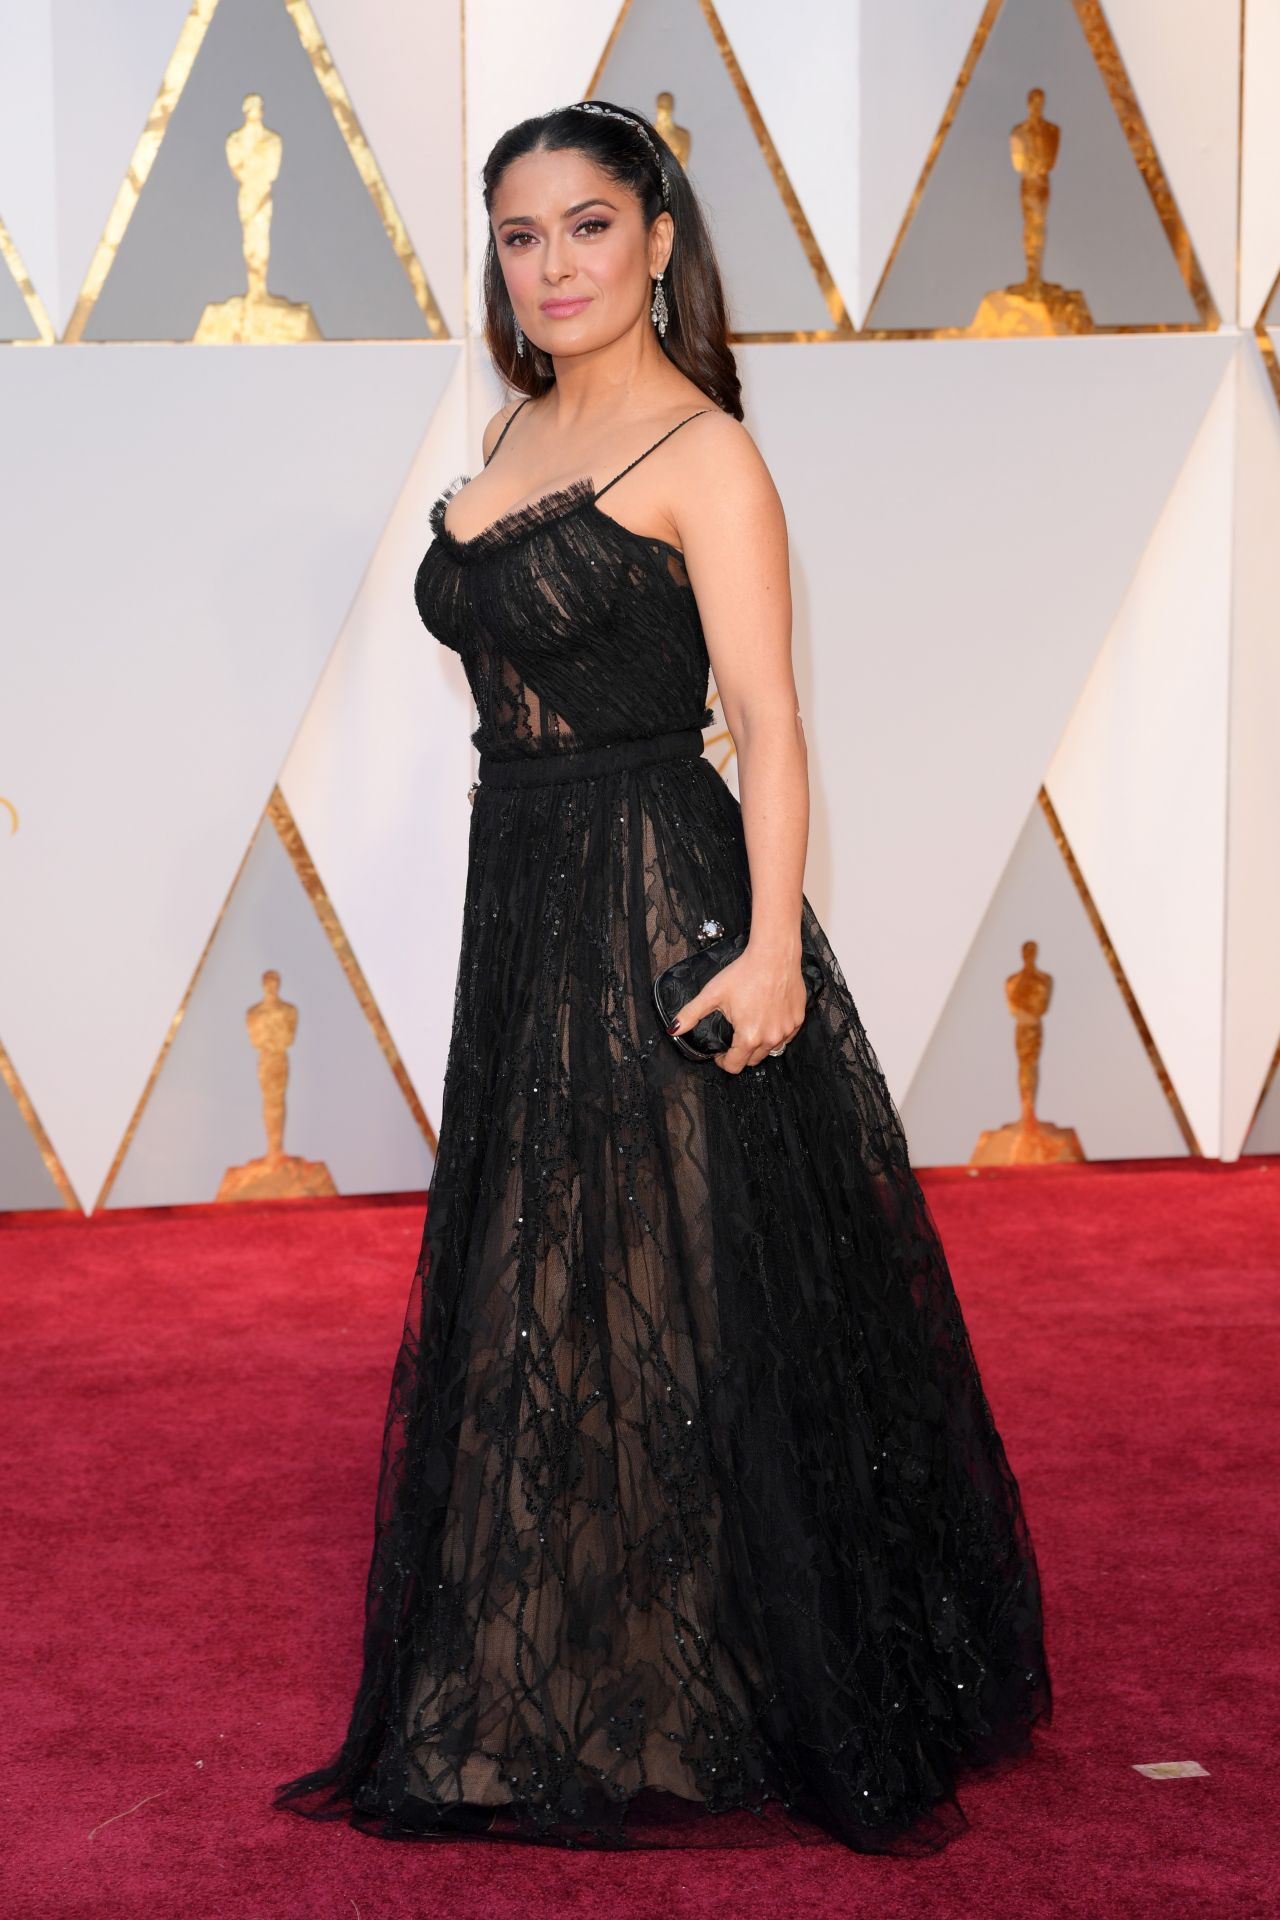 http://celebmafia.com/wp-content/uploads/2017/02/salma-hayek-oscars-2017-red-carpet-in-hollywood-6.jpg